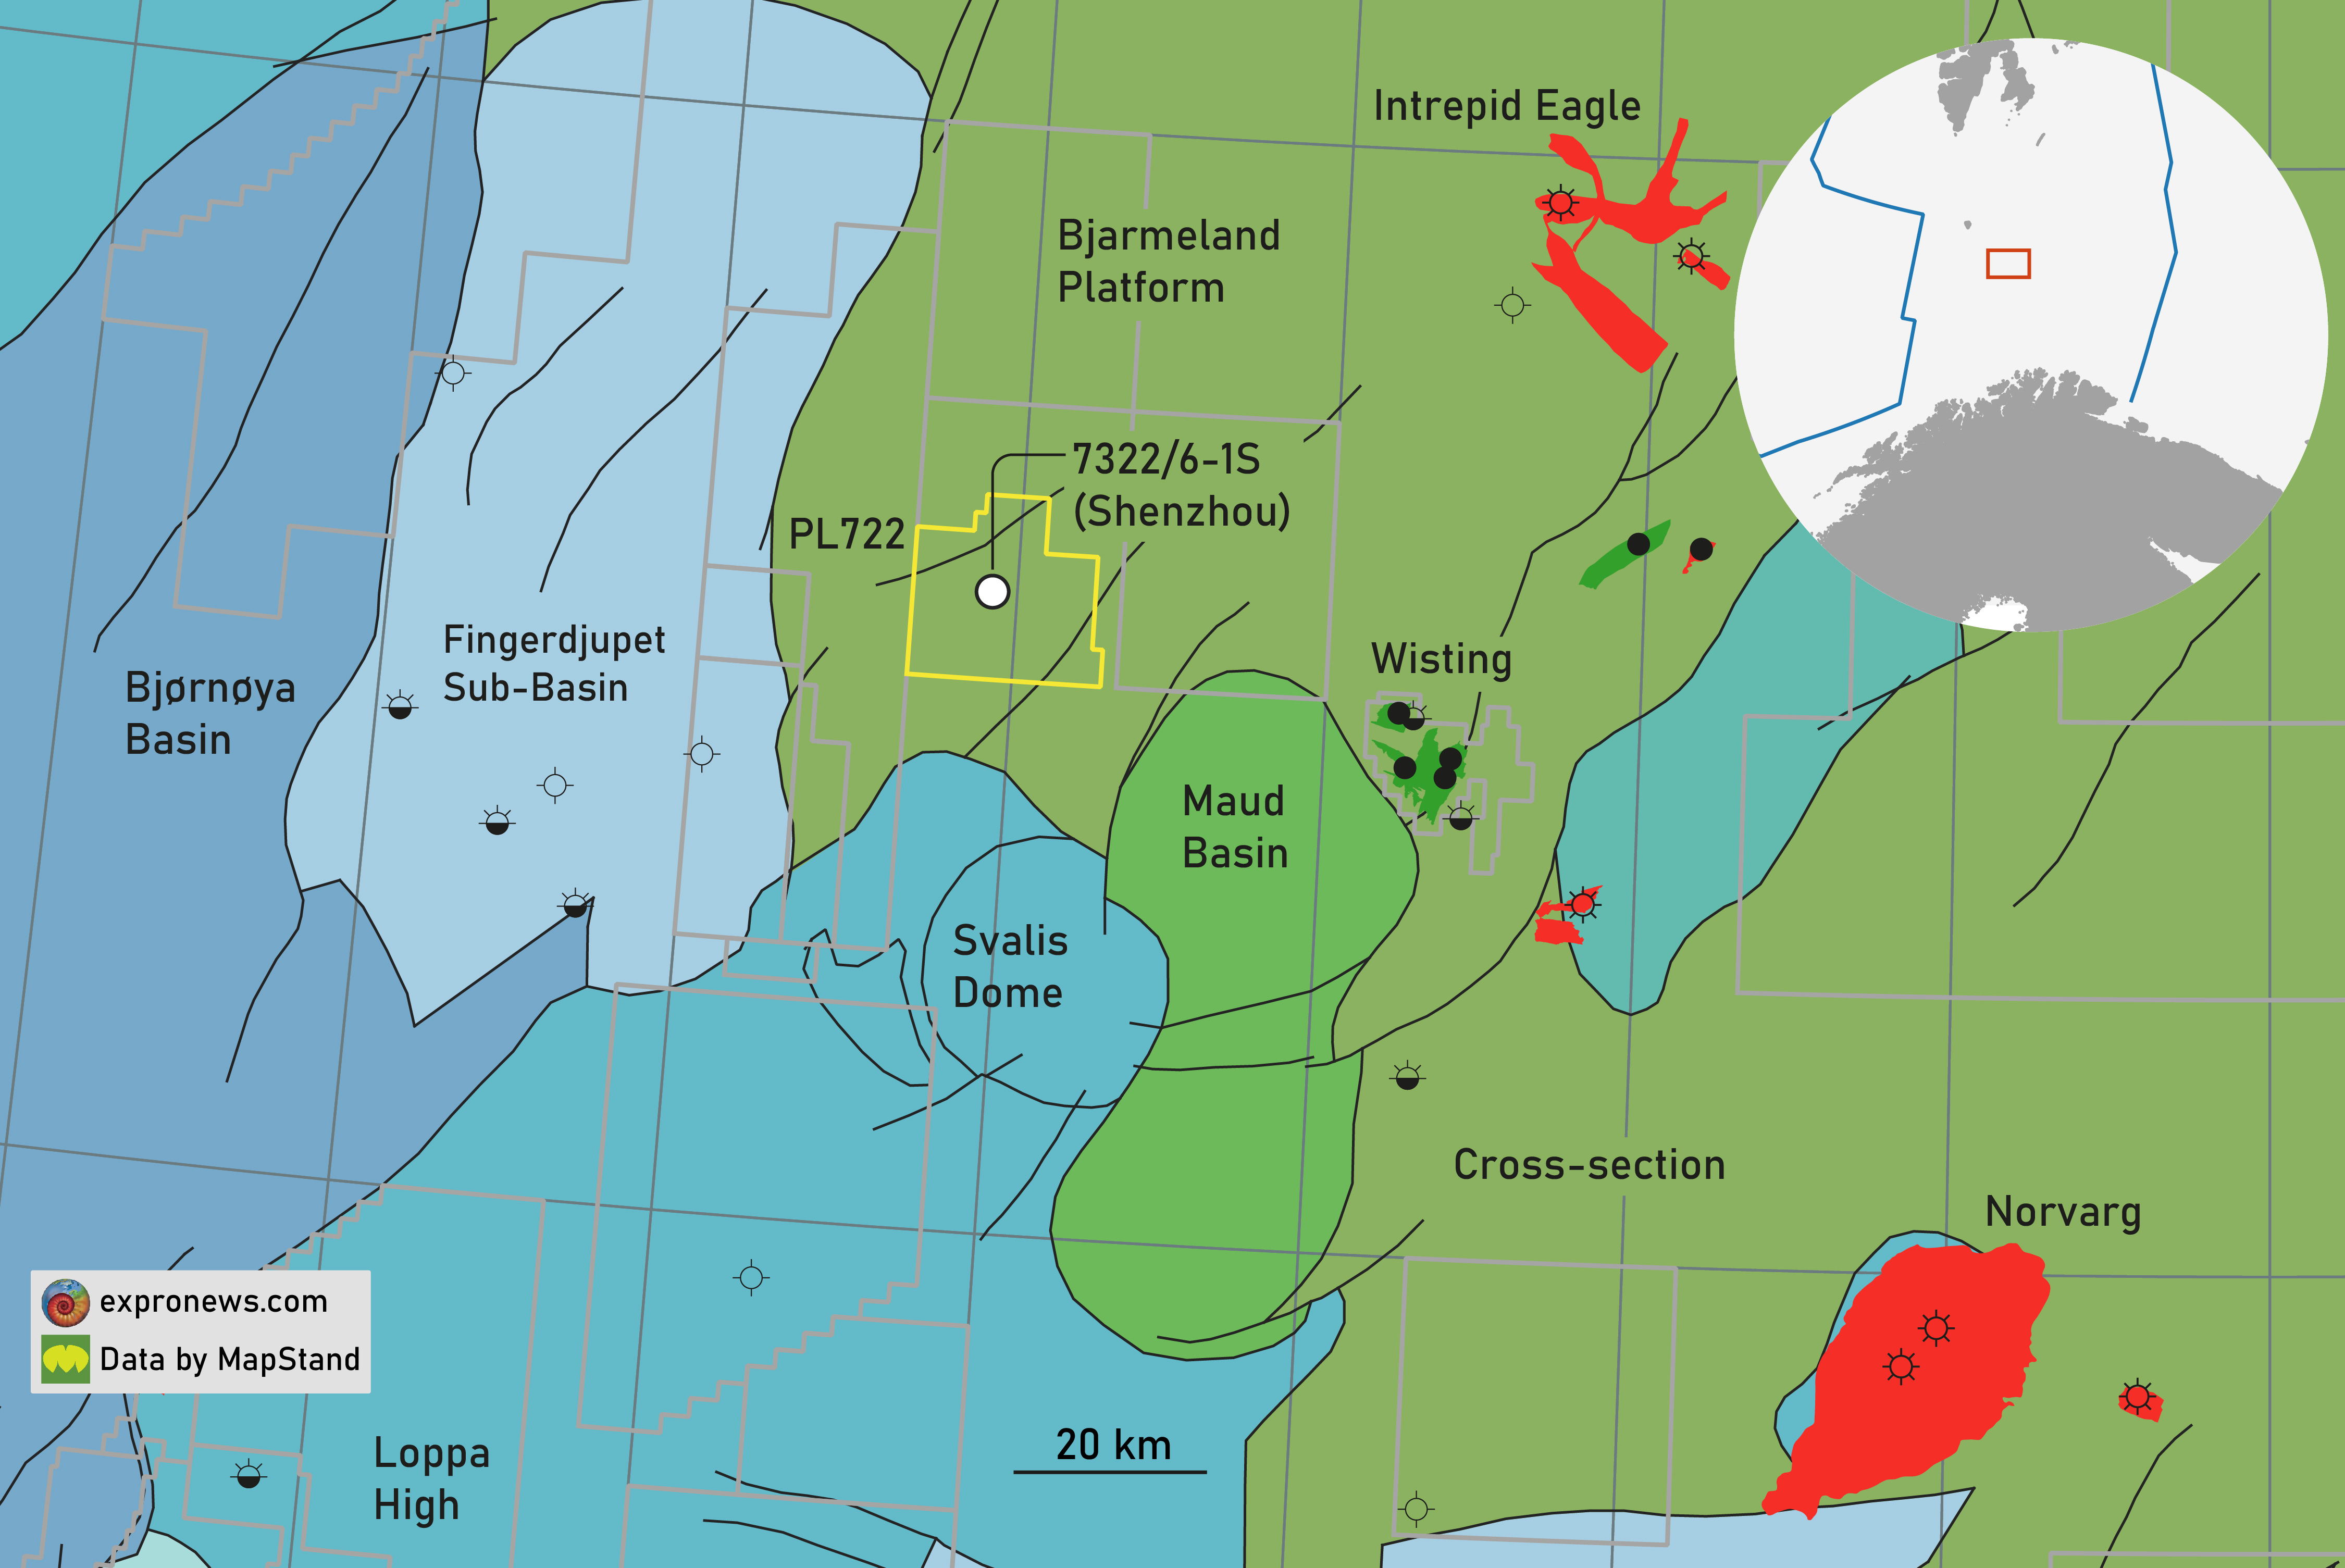 Another blow for the Barents Sea